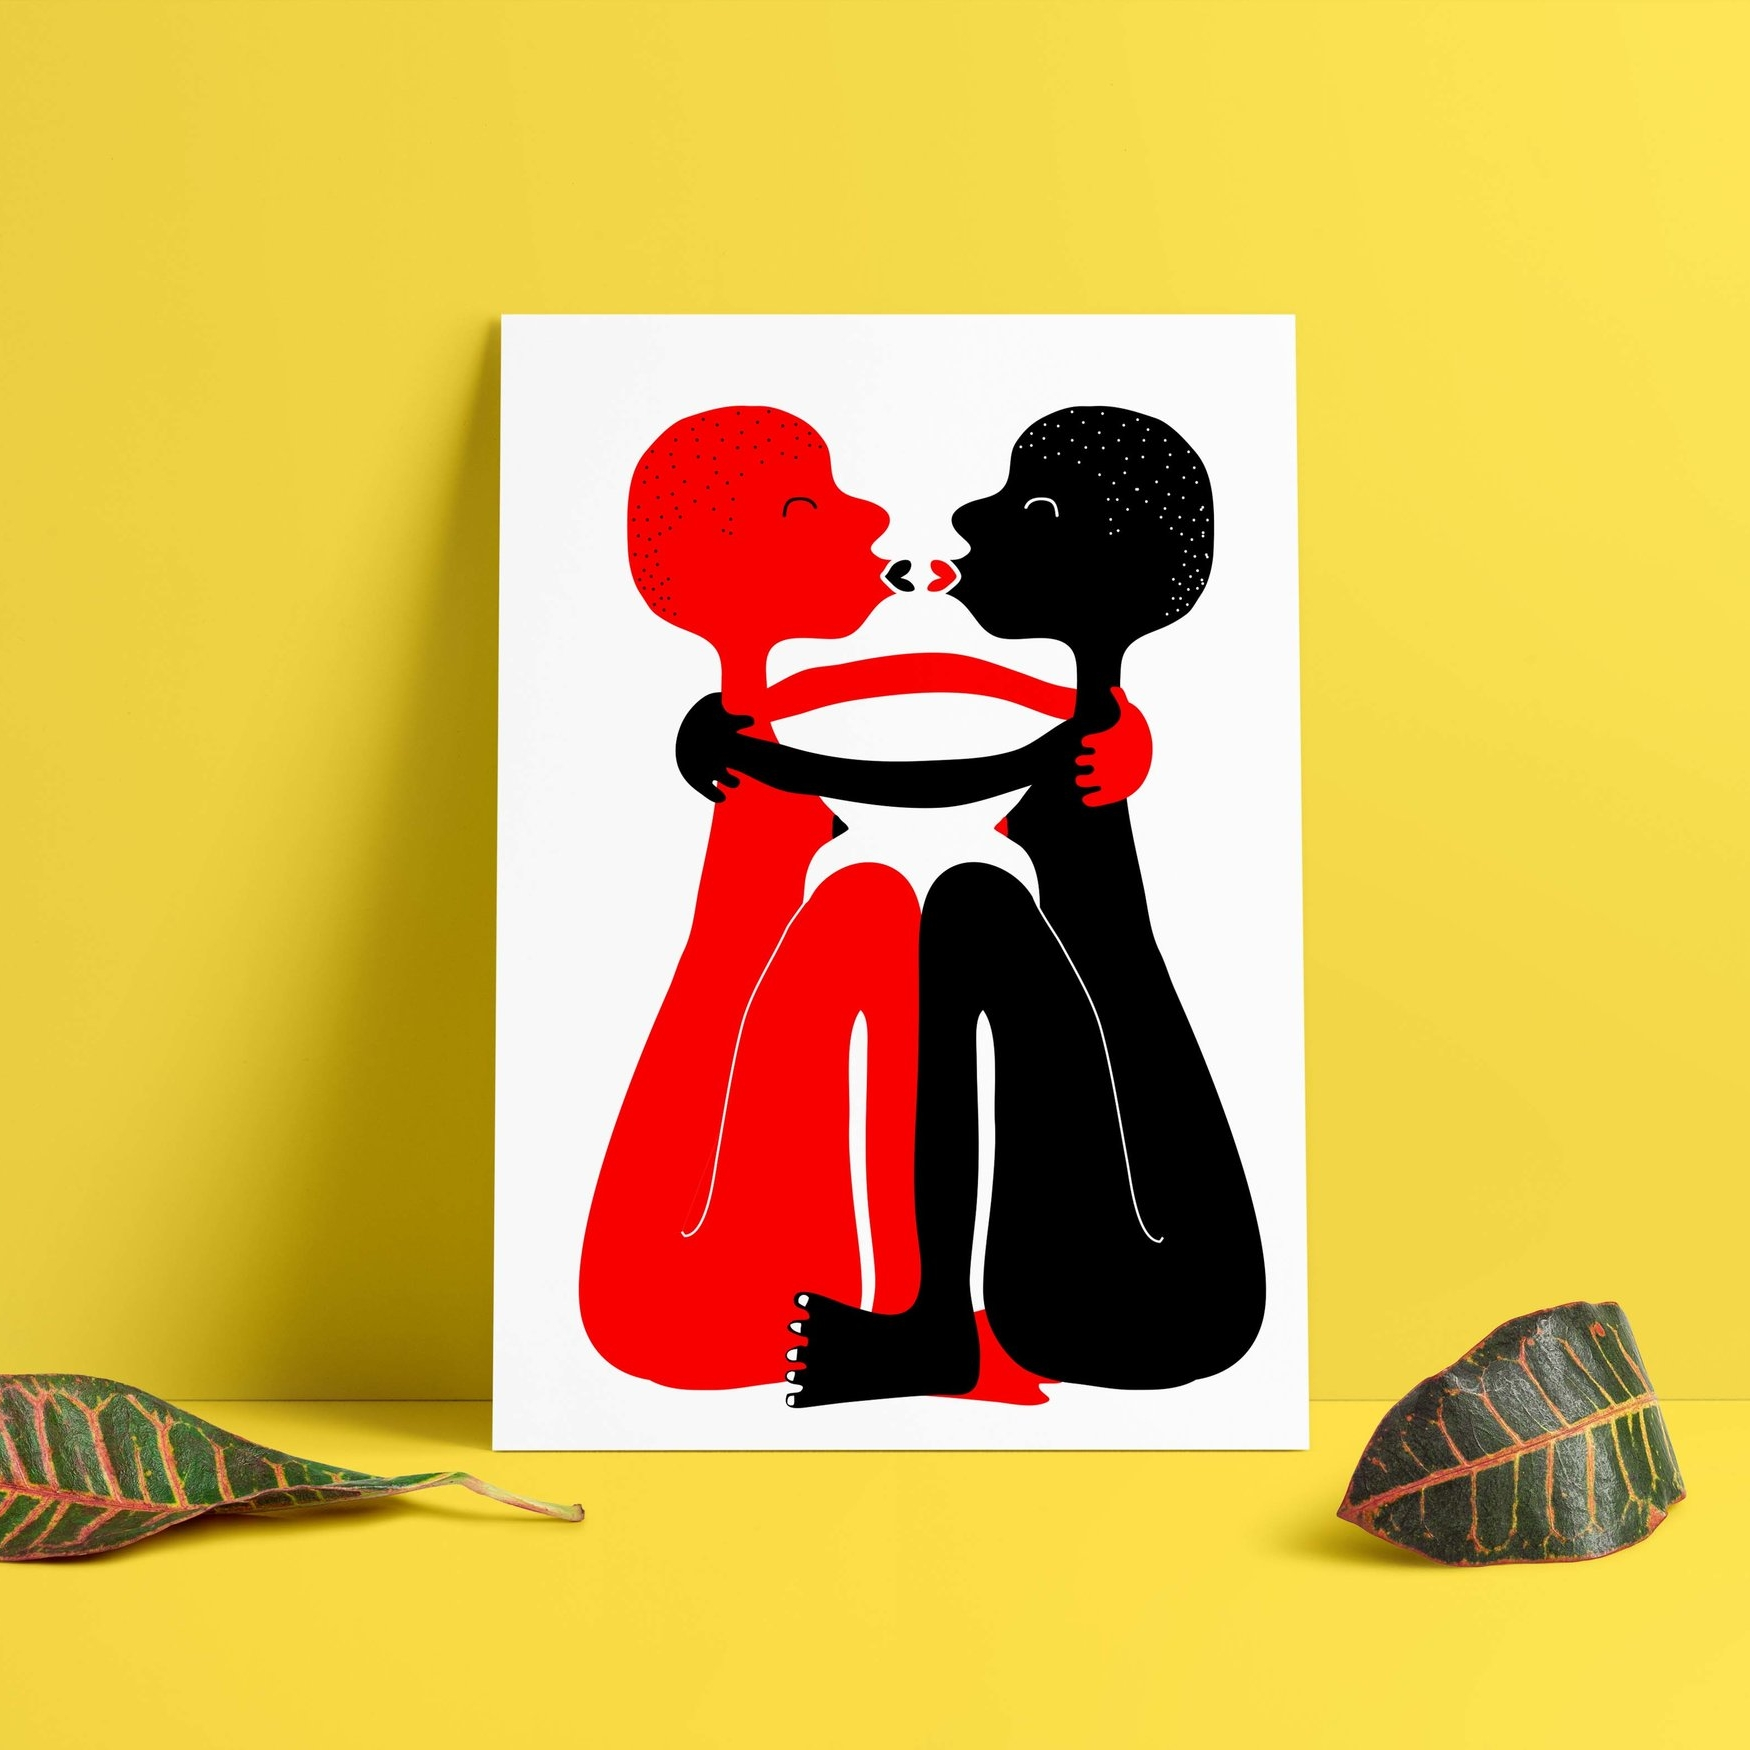 Hey girl hey - Geordie artist iAmiCreative offers prints and t-shirts featuring gorgeous lady love.